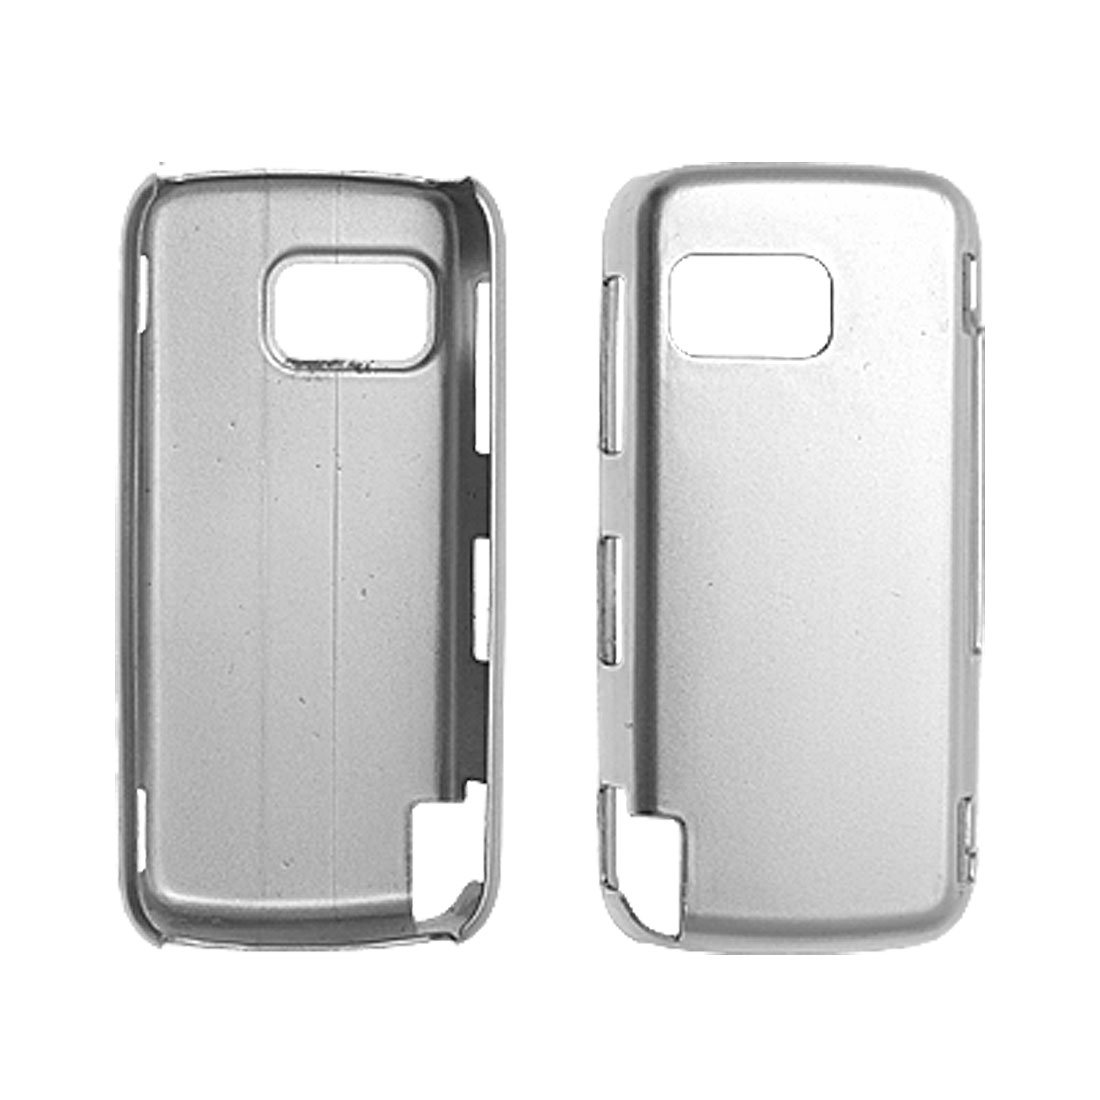 Silvery Hard Back Case Shield Protector for Nokia 5800